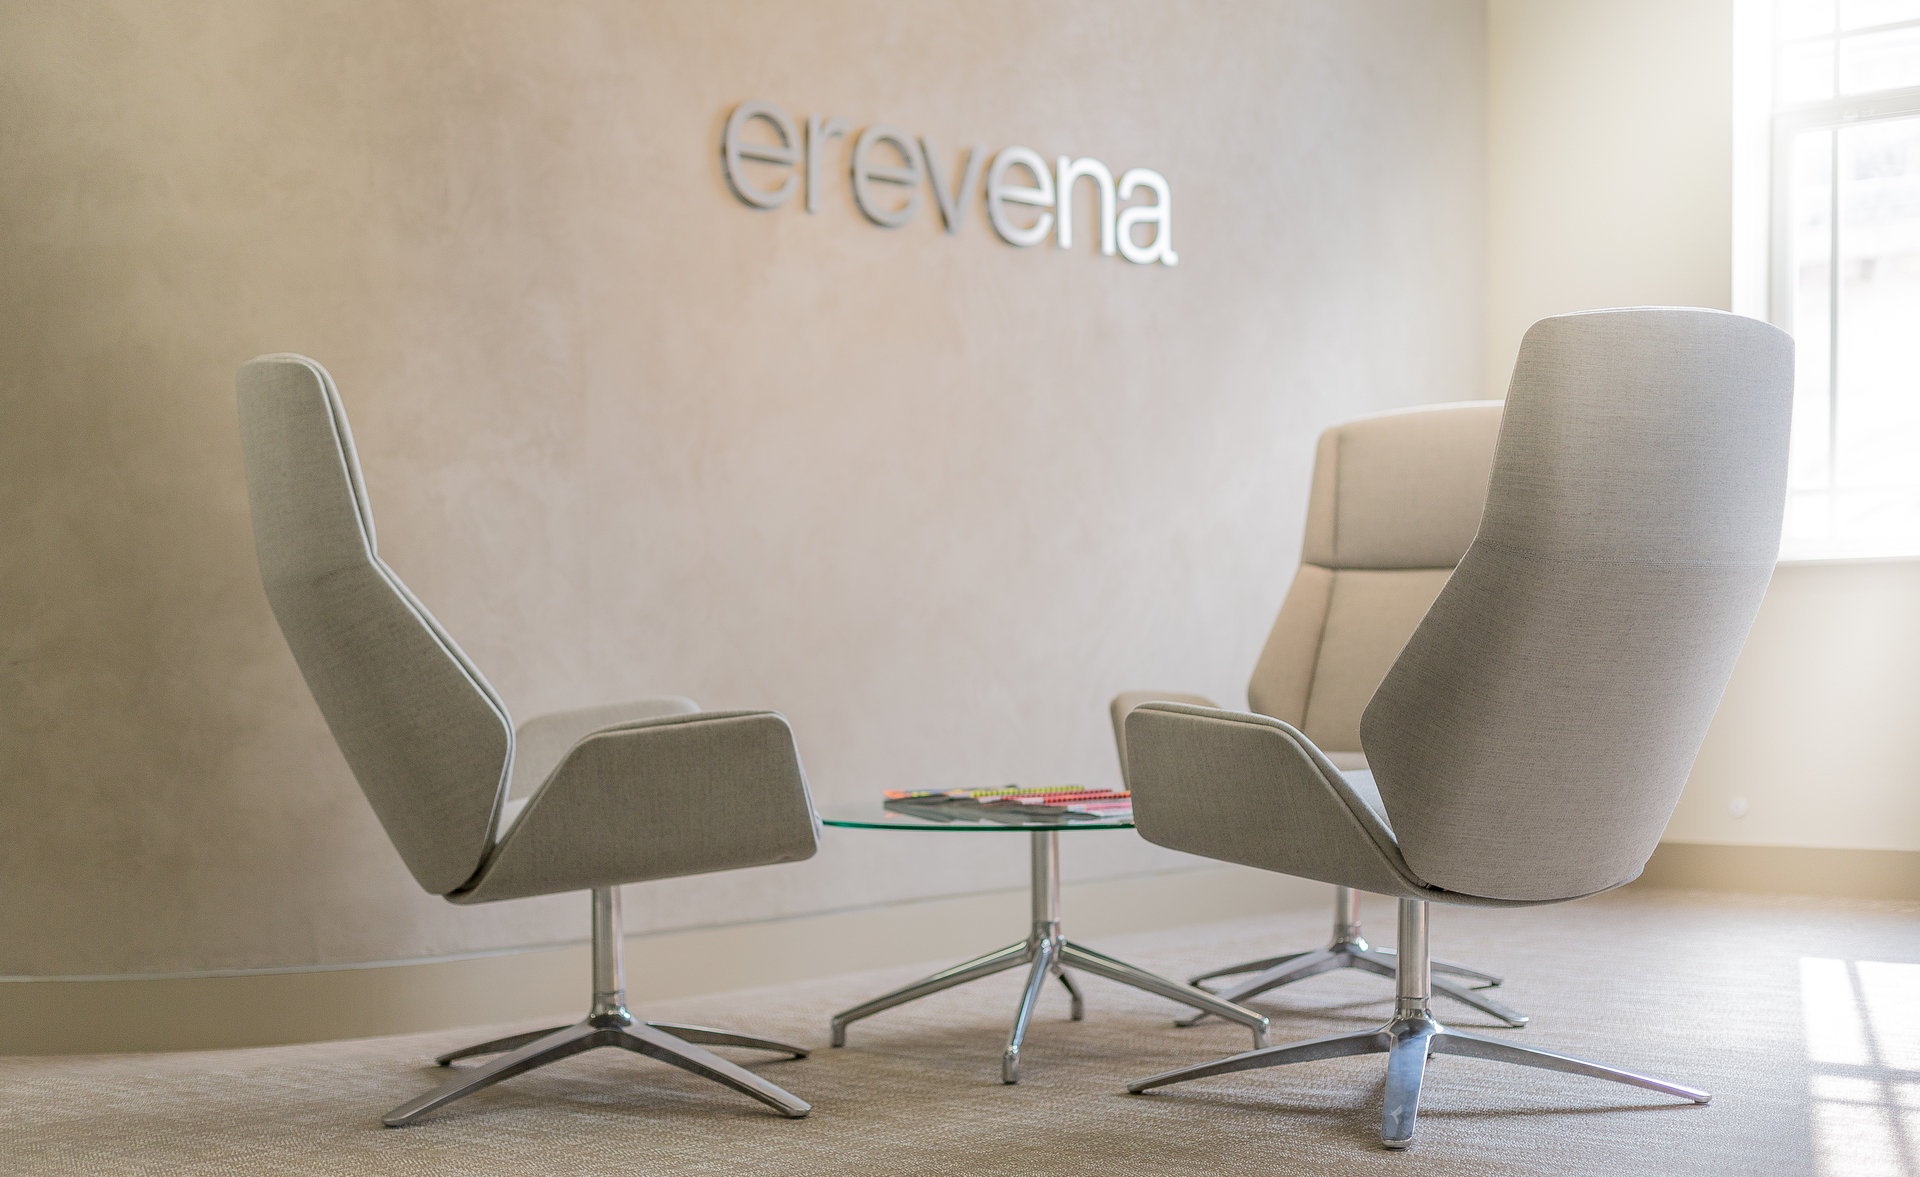 Erevena Appoint Jane Dowding as Non-Executive Director